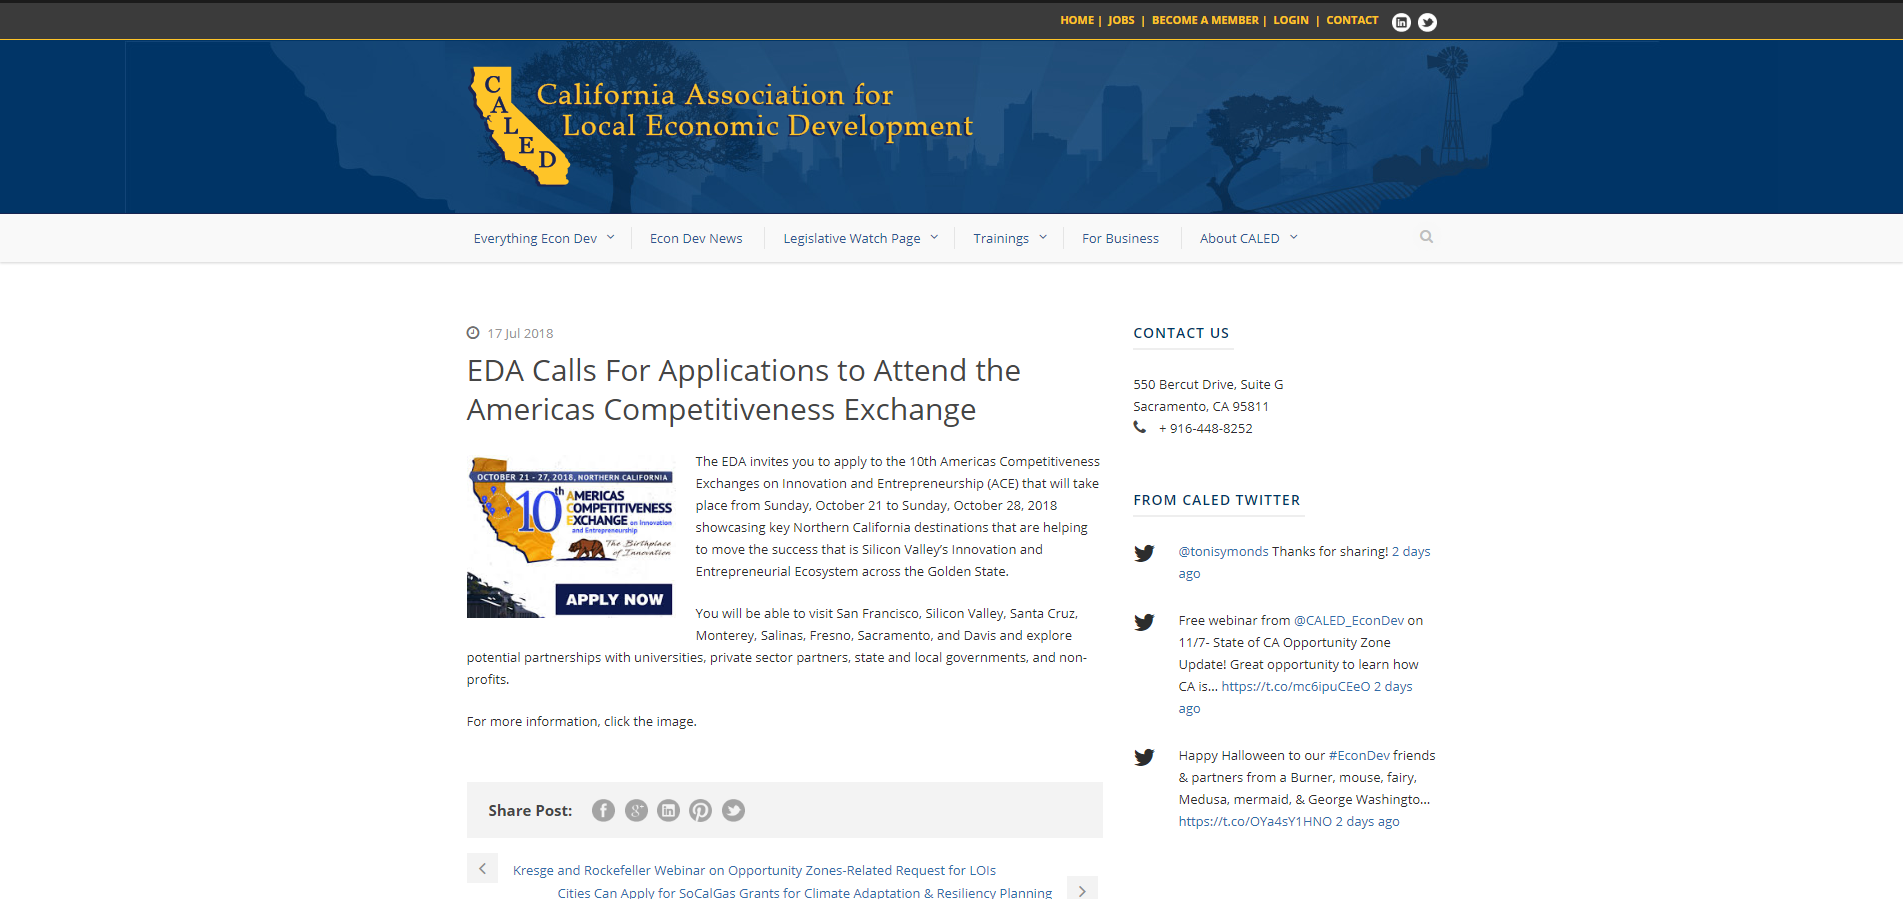 EDA Calls For Applications to Attend the Americas Competitiveness Exchange